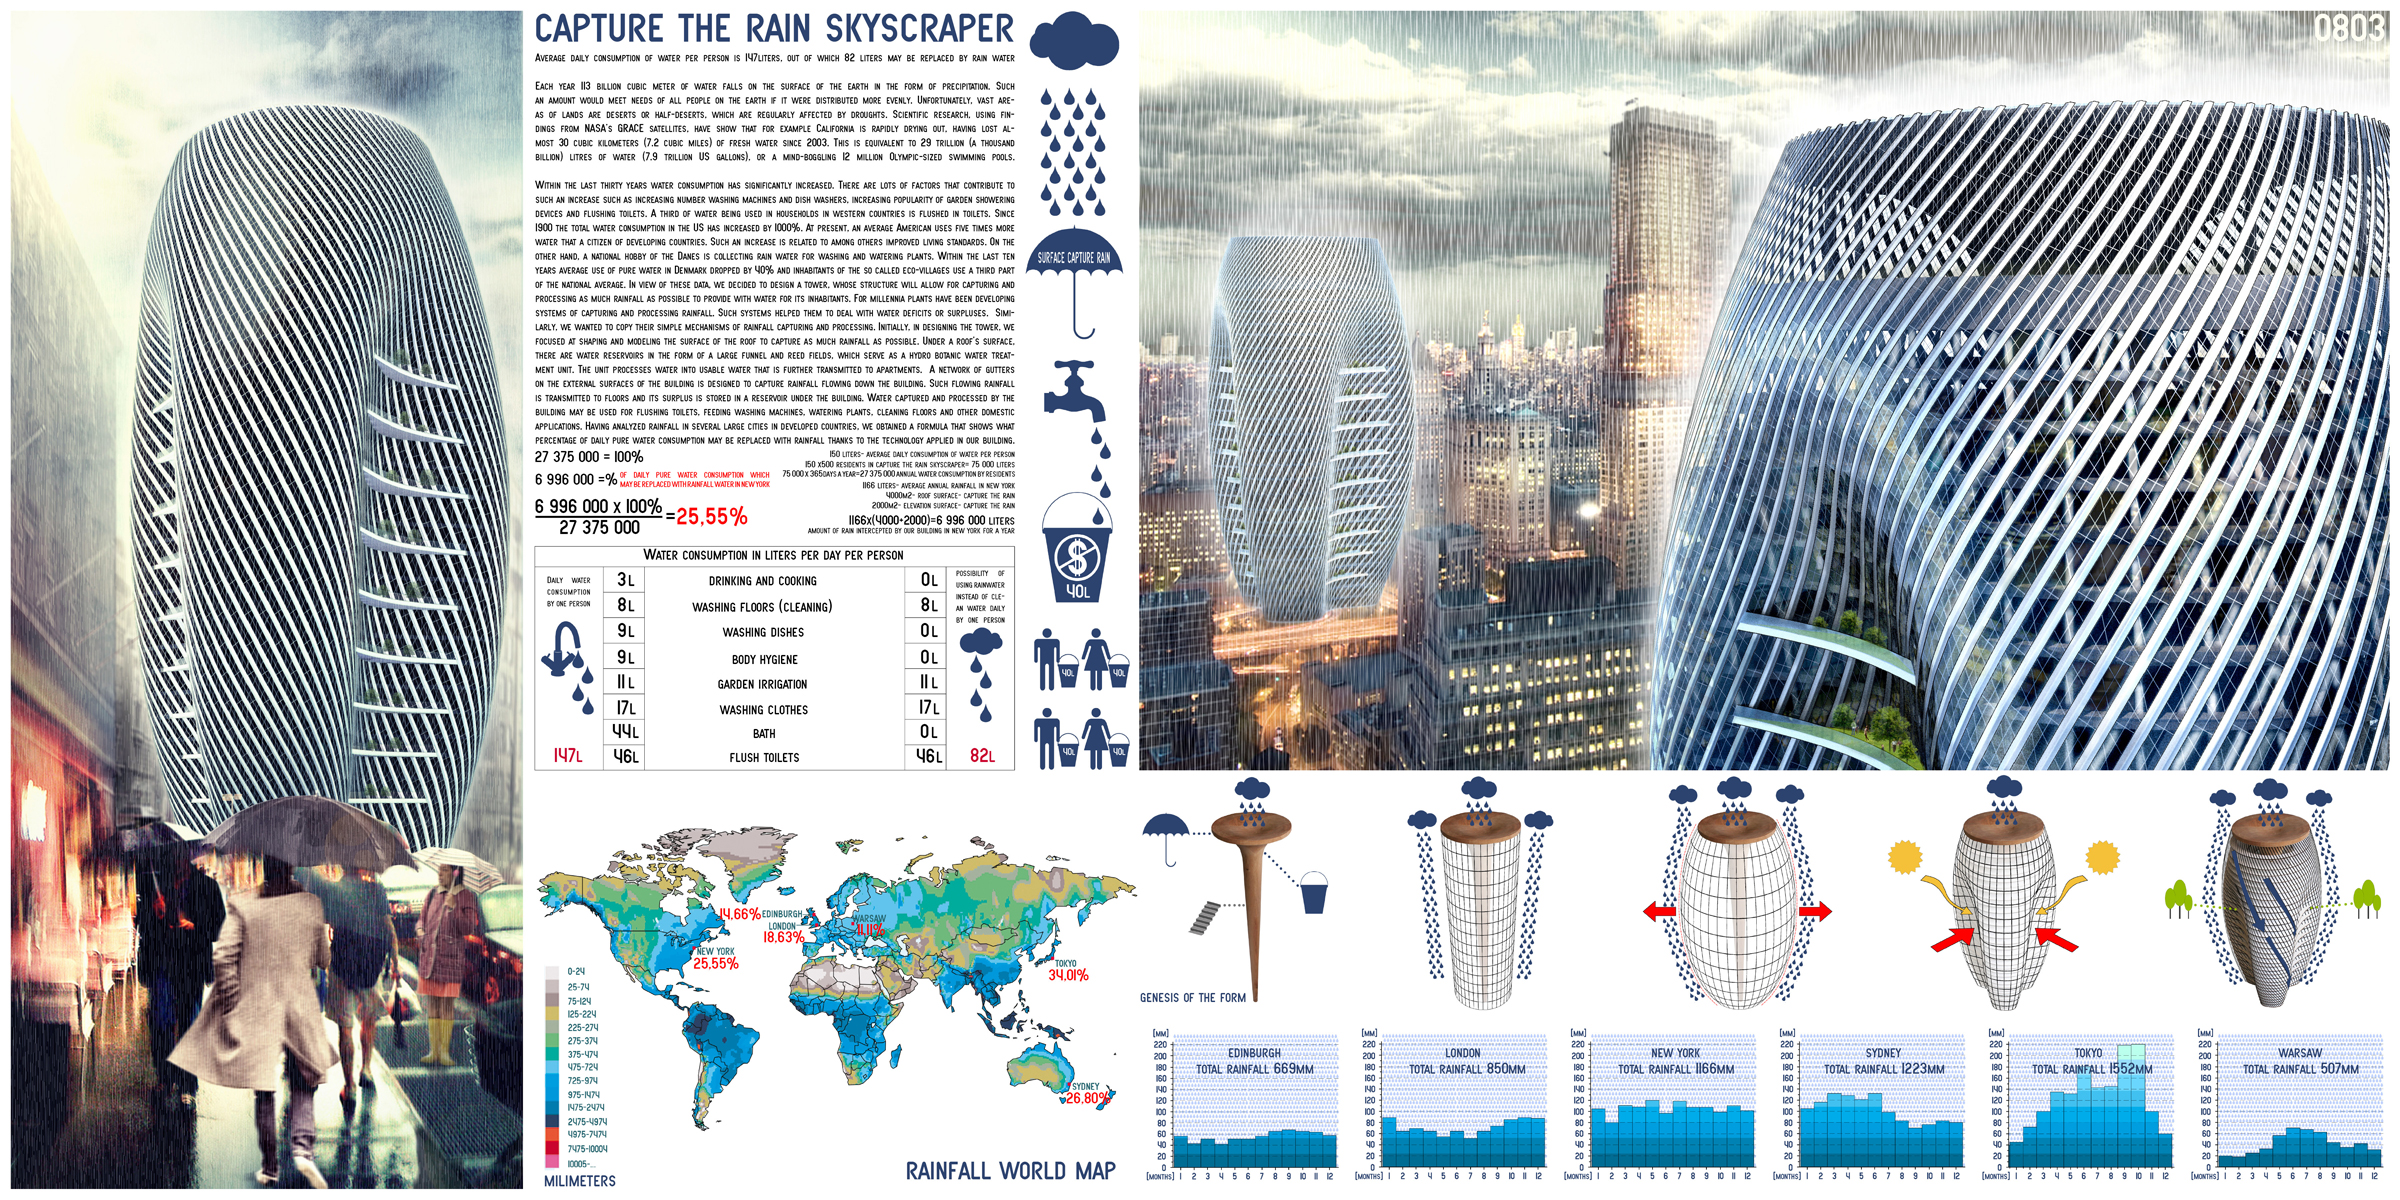 Rain Collector Skyscraper- eVolo | Architecture Magazine